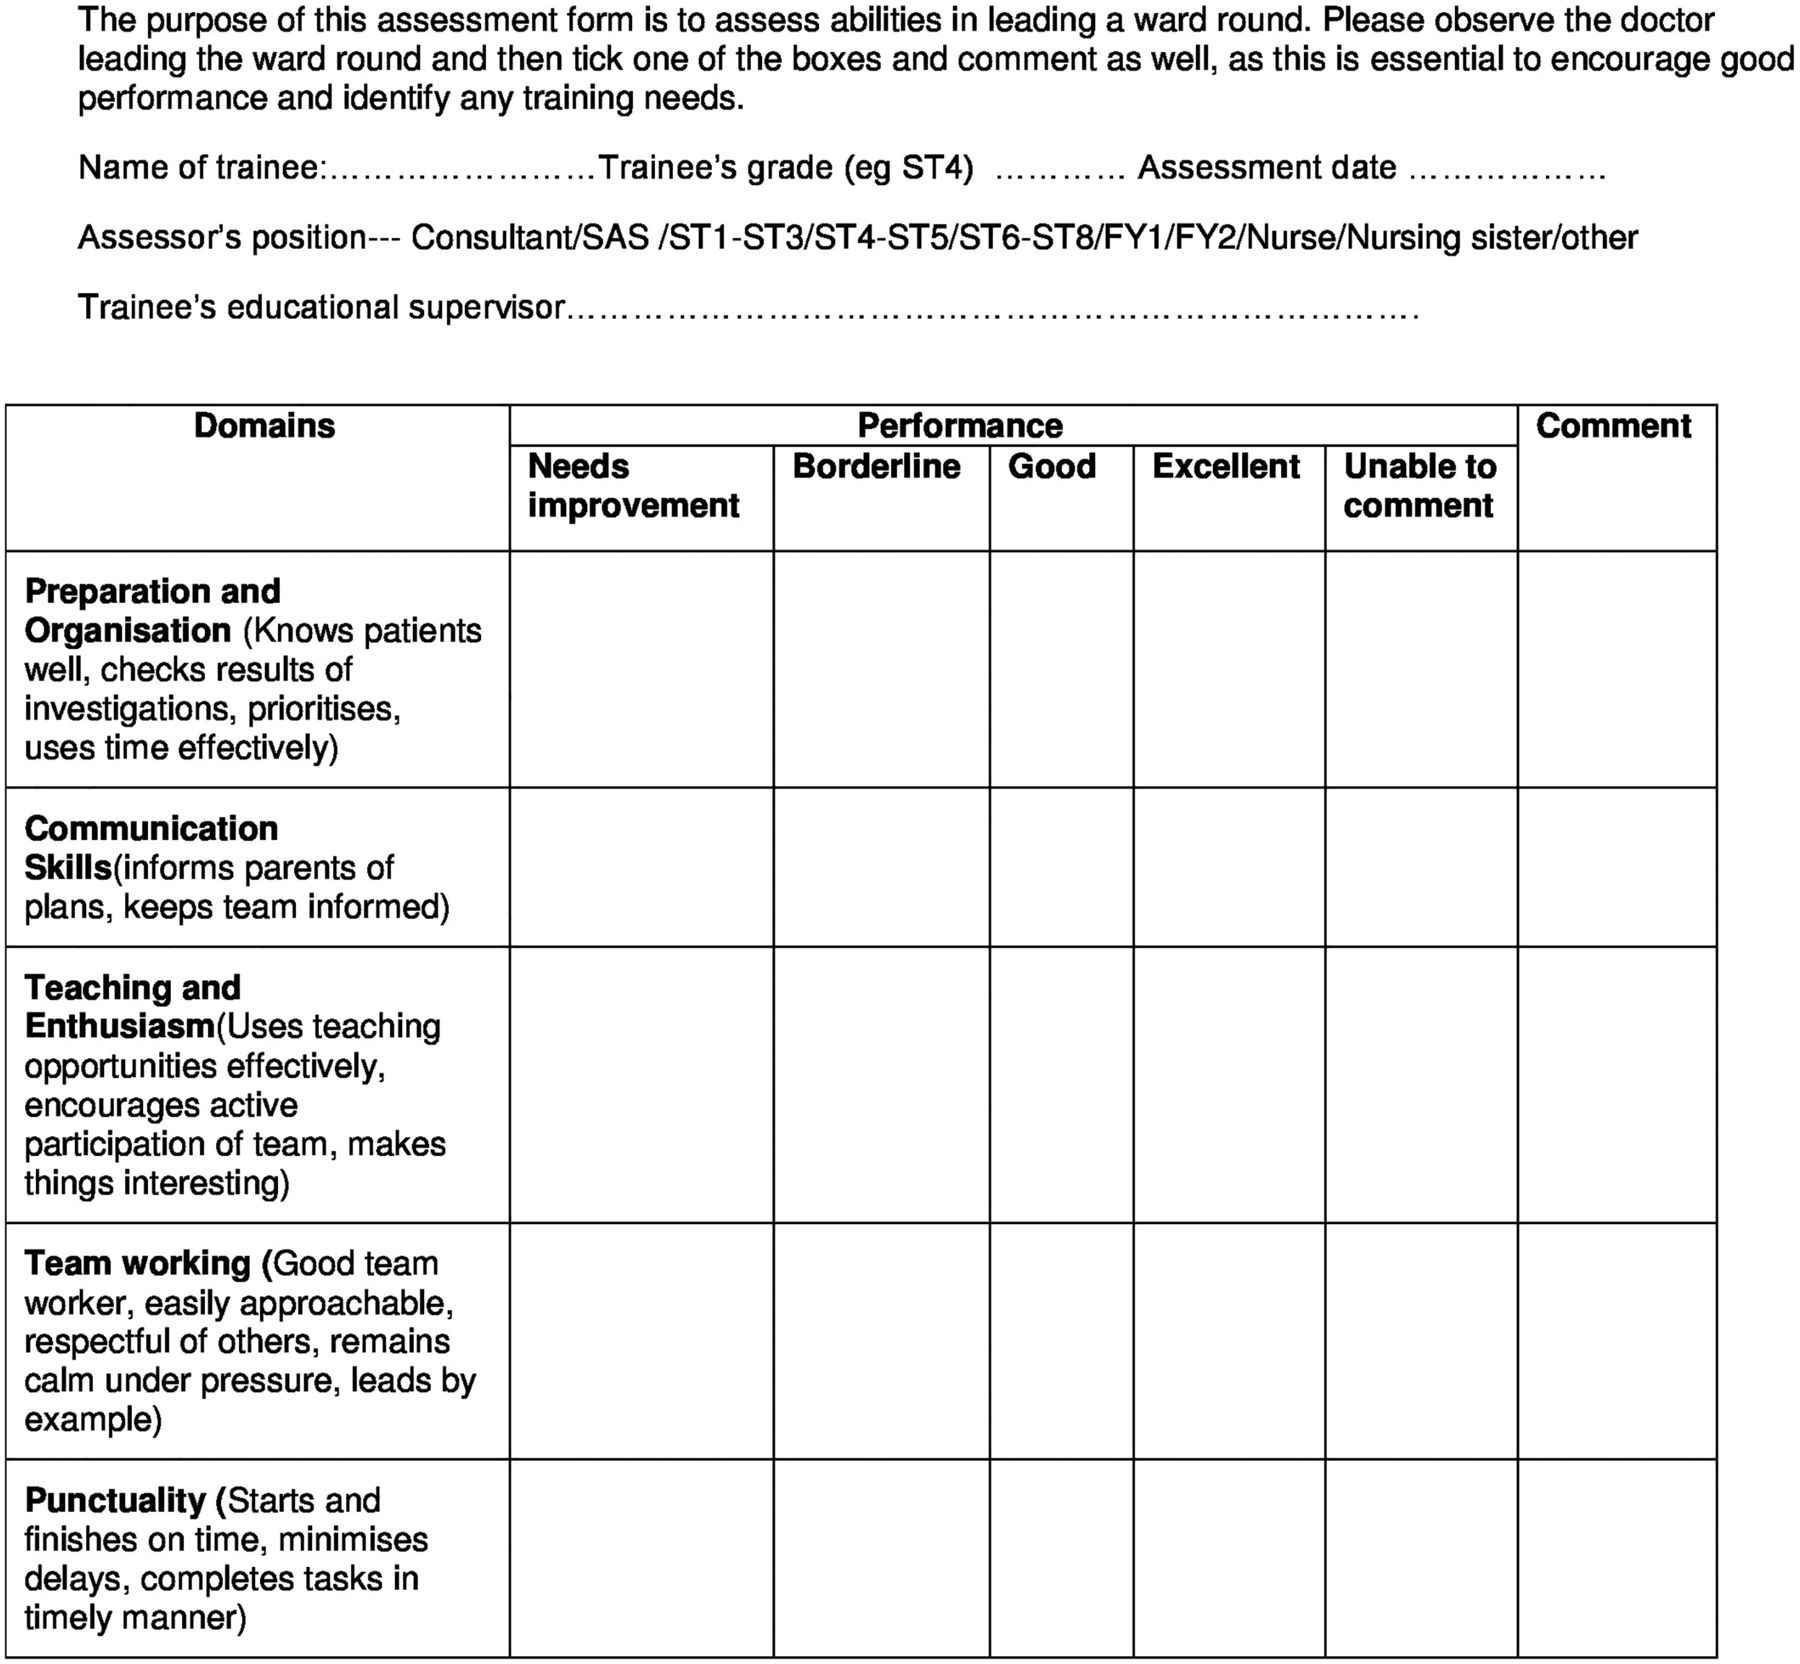 a multisource feedback tool to assess ward round leadership skills figure